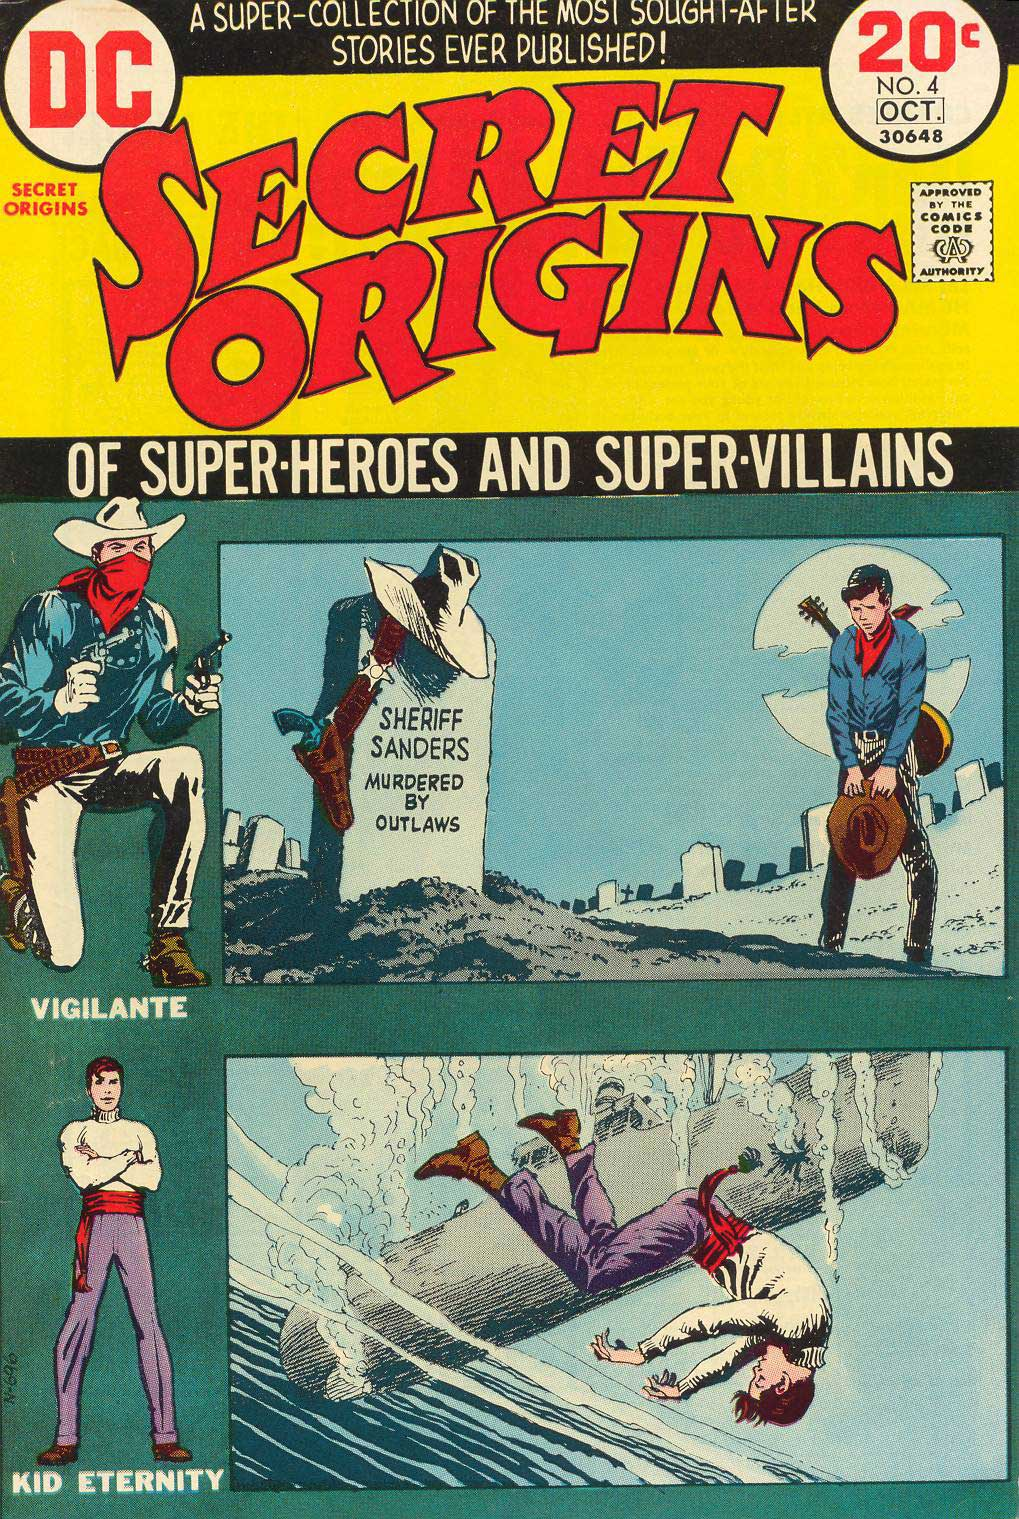 Secret Origins #4 (Sept/Oct 1983) cover by Nick Cardy featuring the Vigilante and Kid Eternity